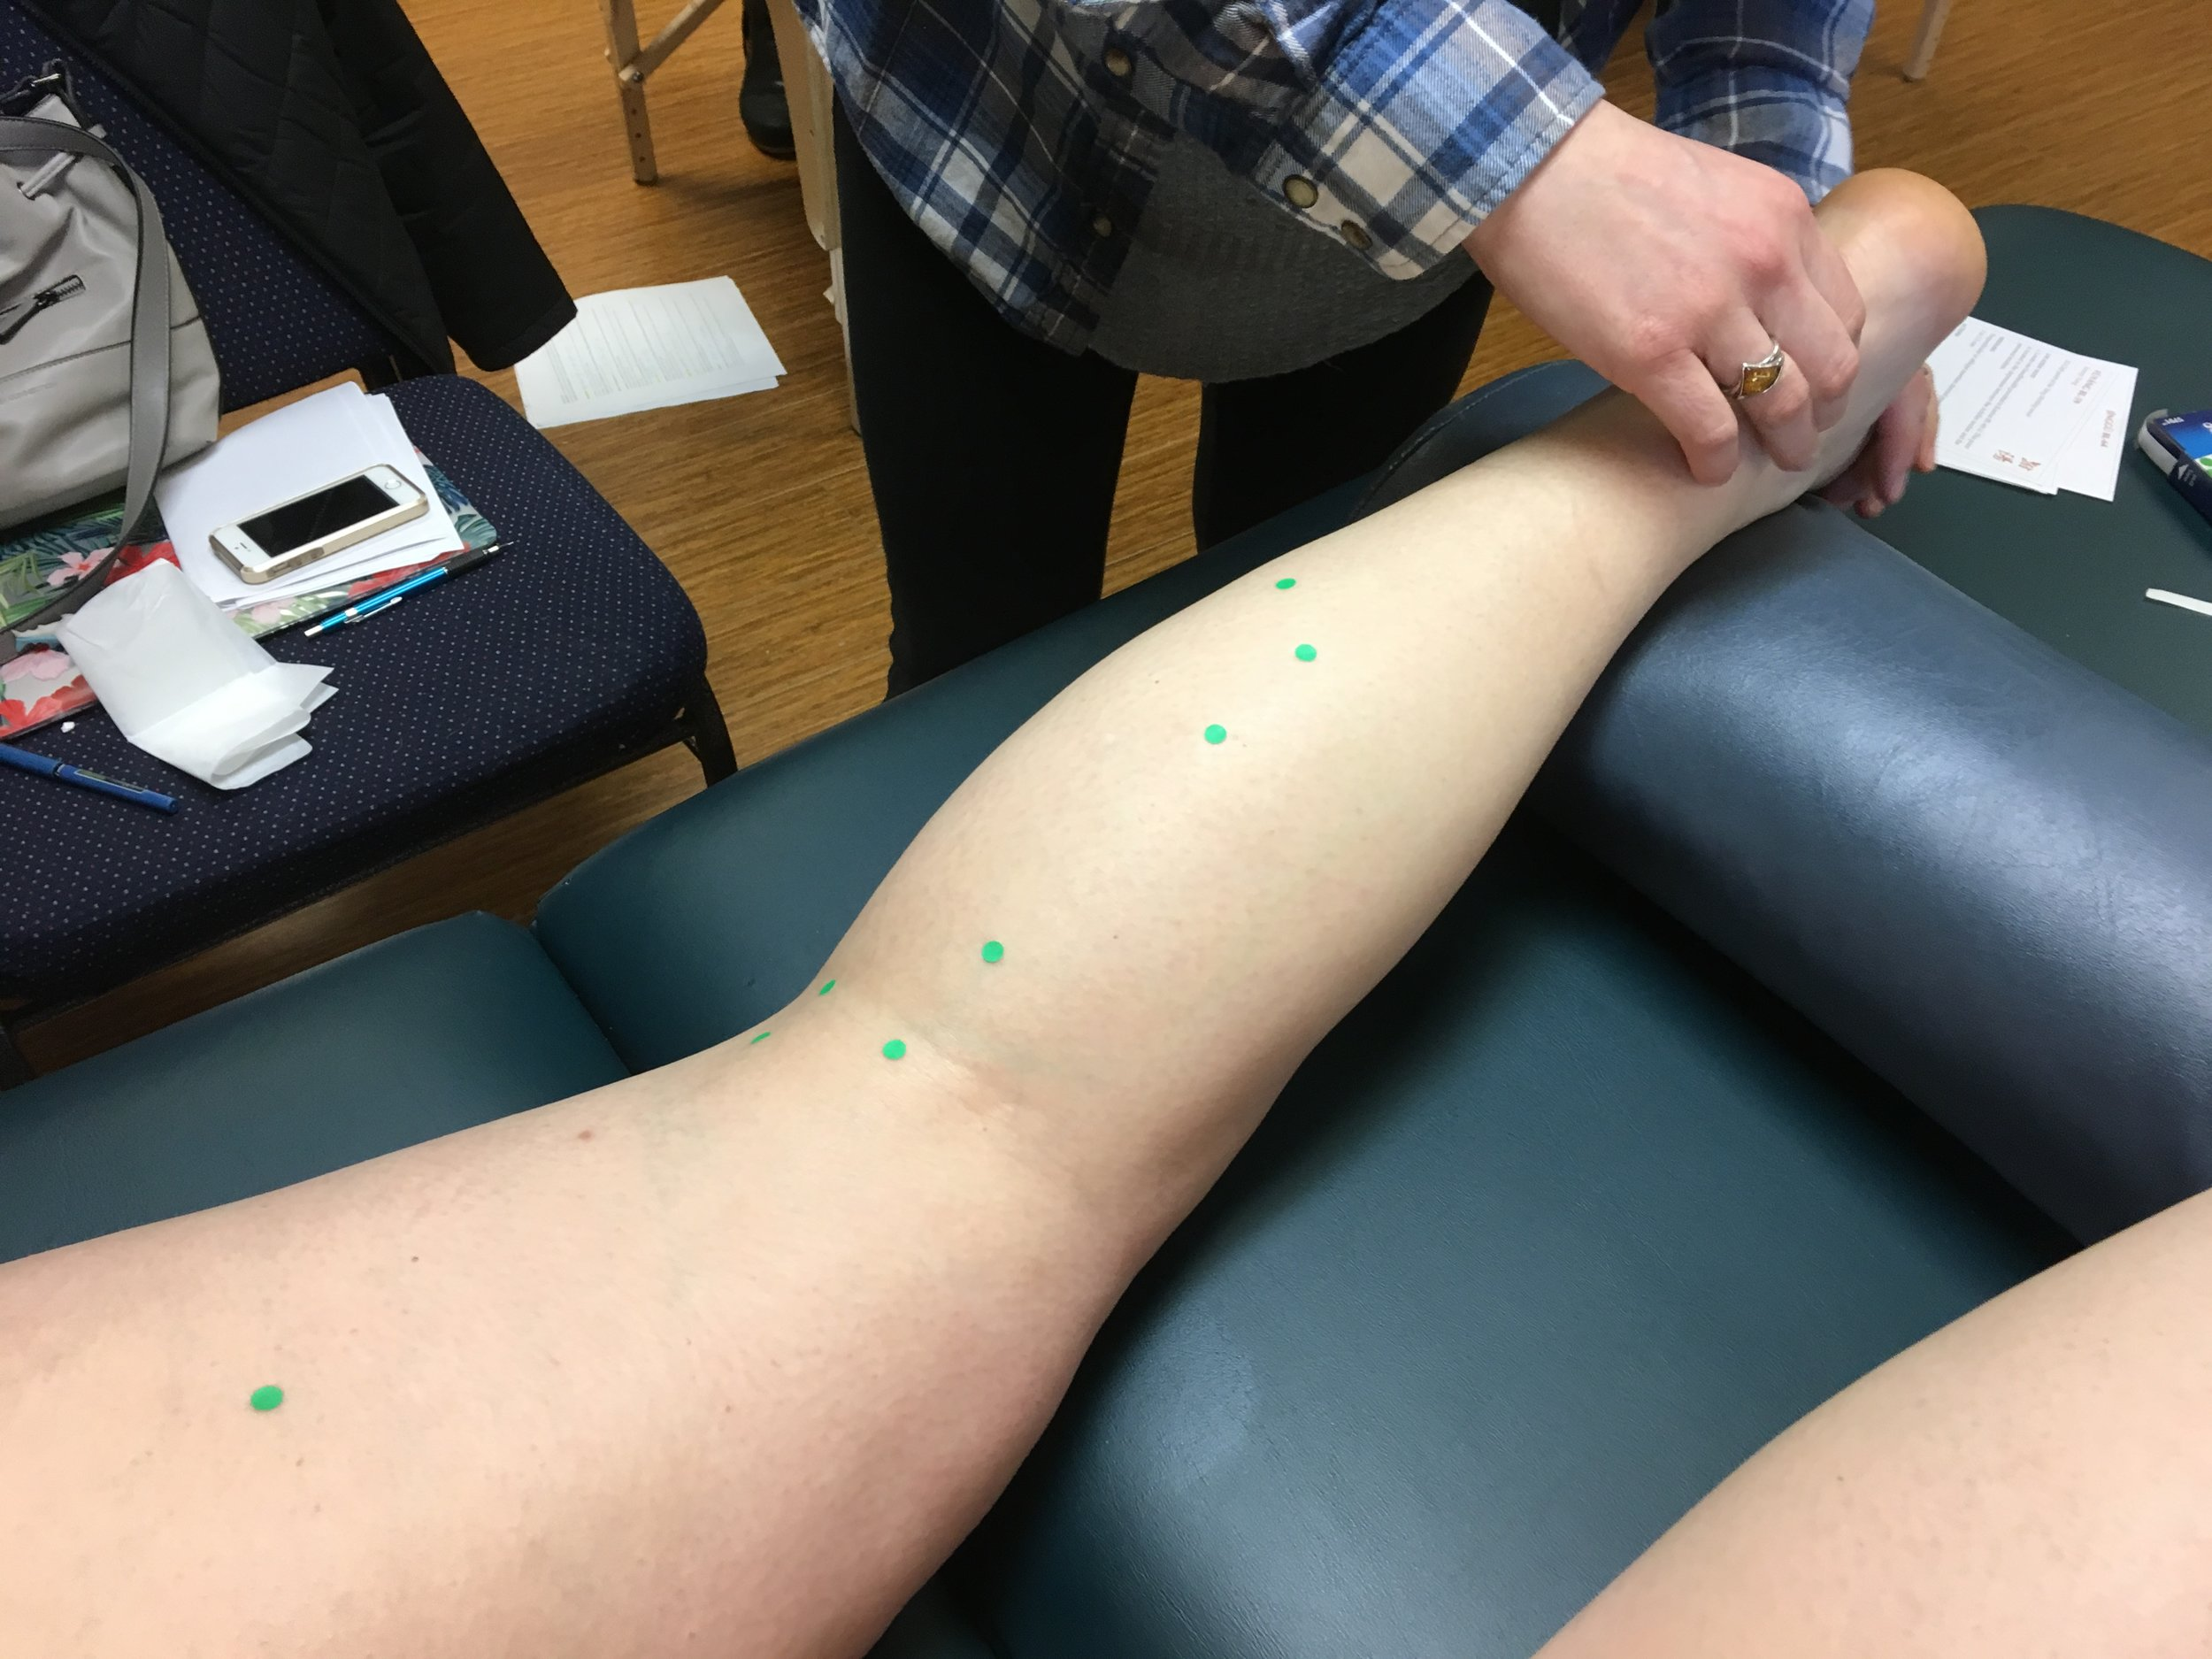 Finding acupuncture points on the extremities